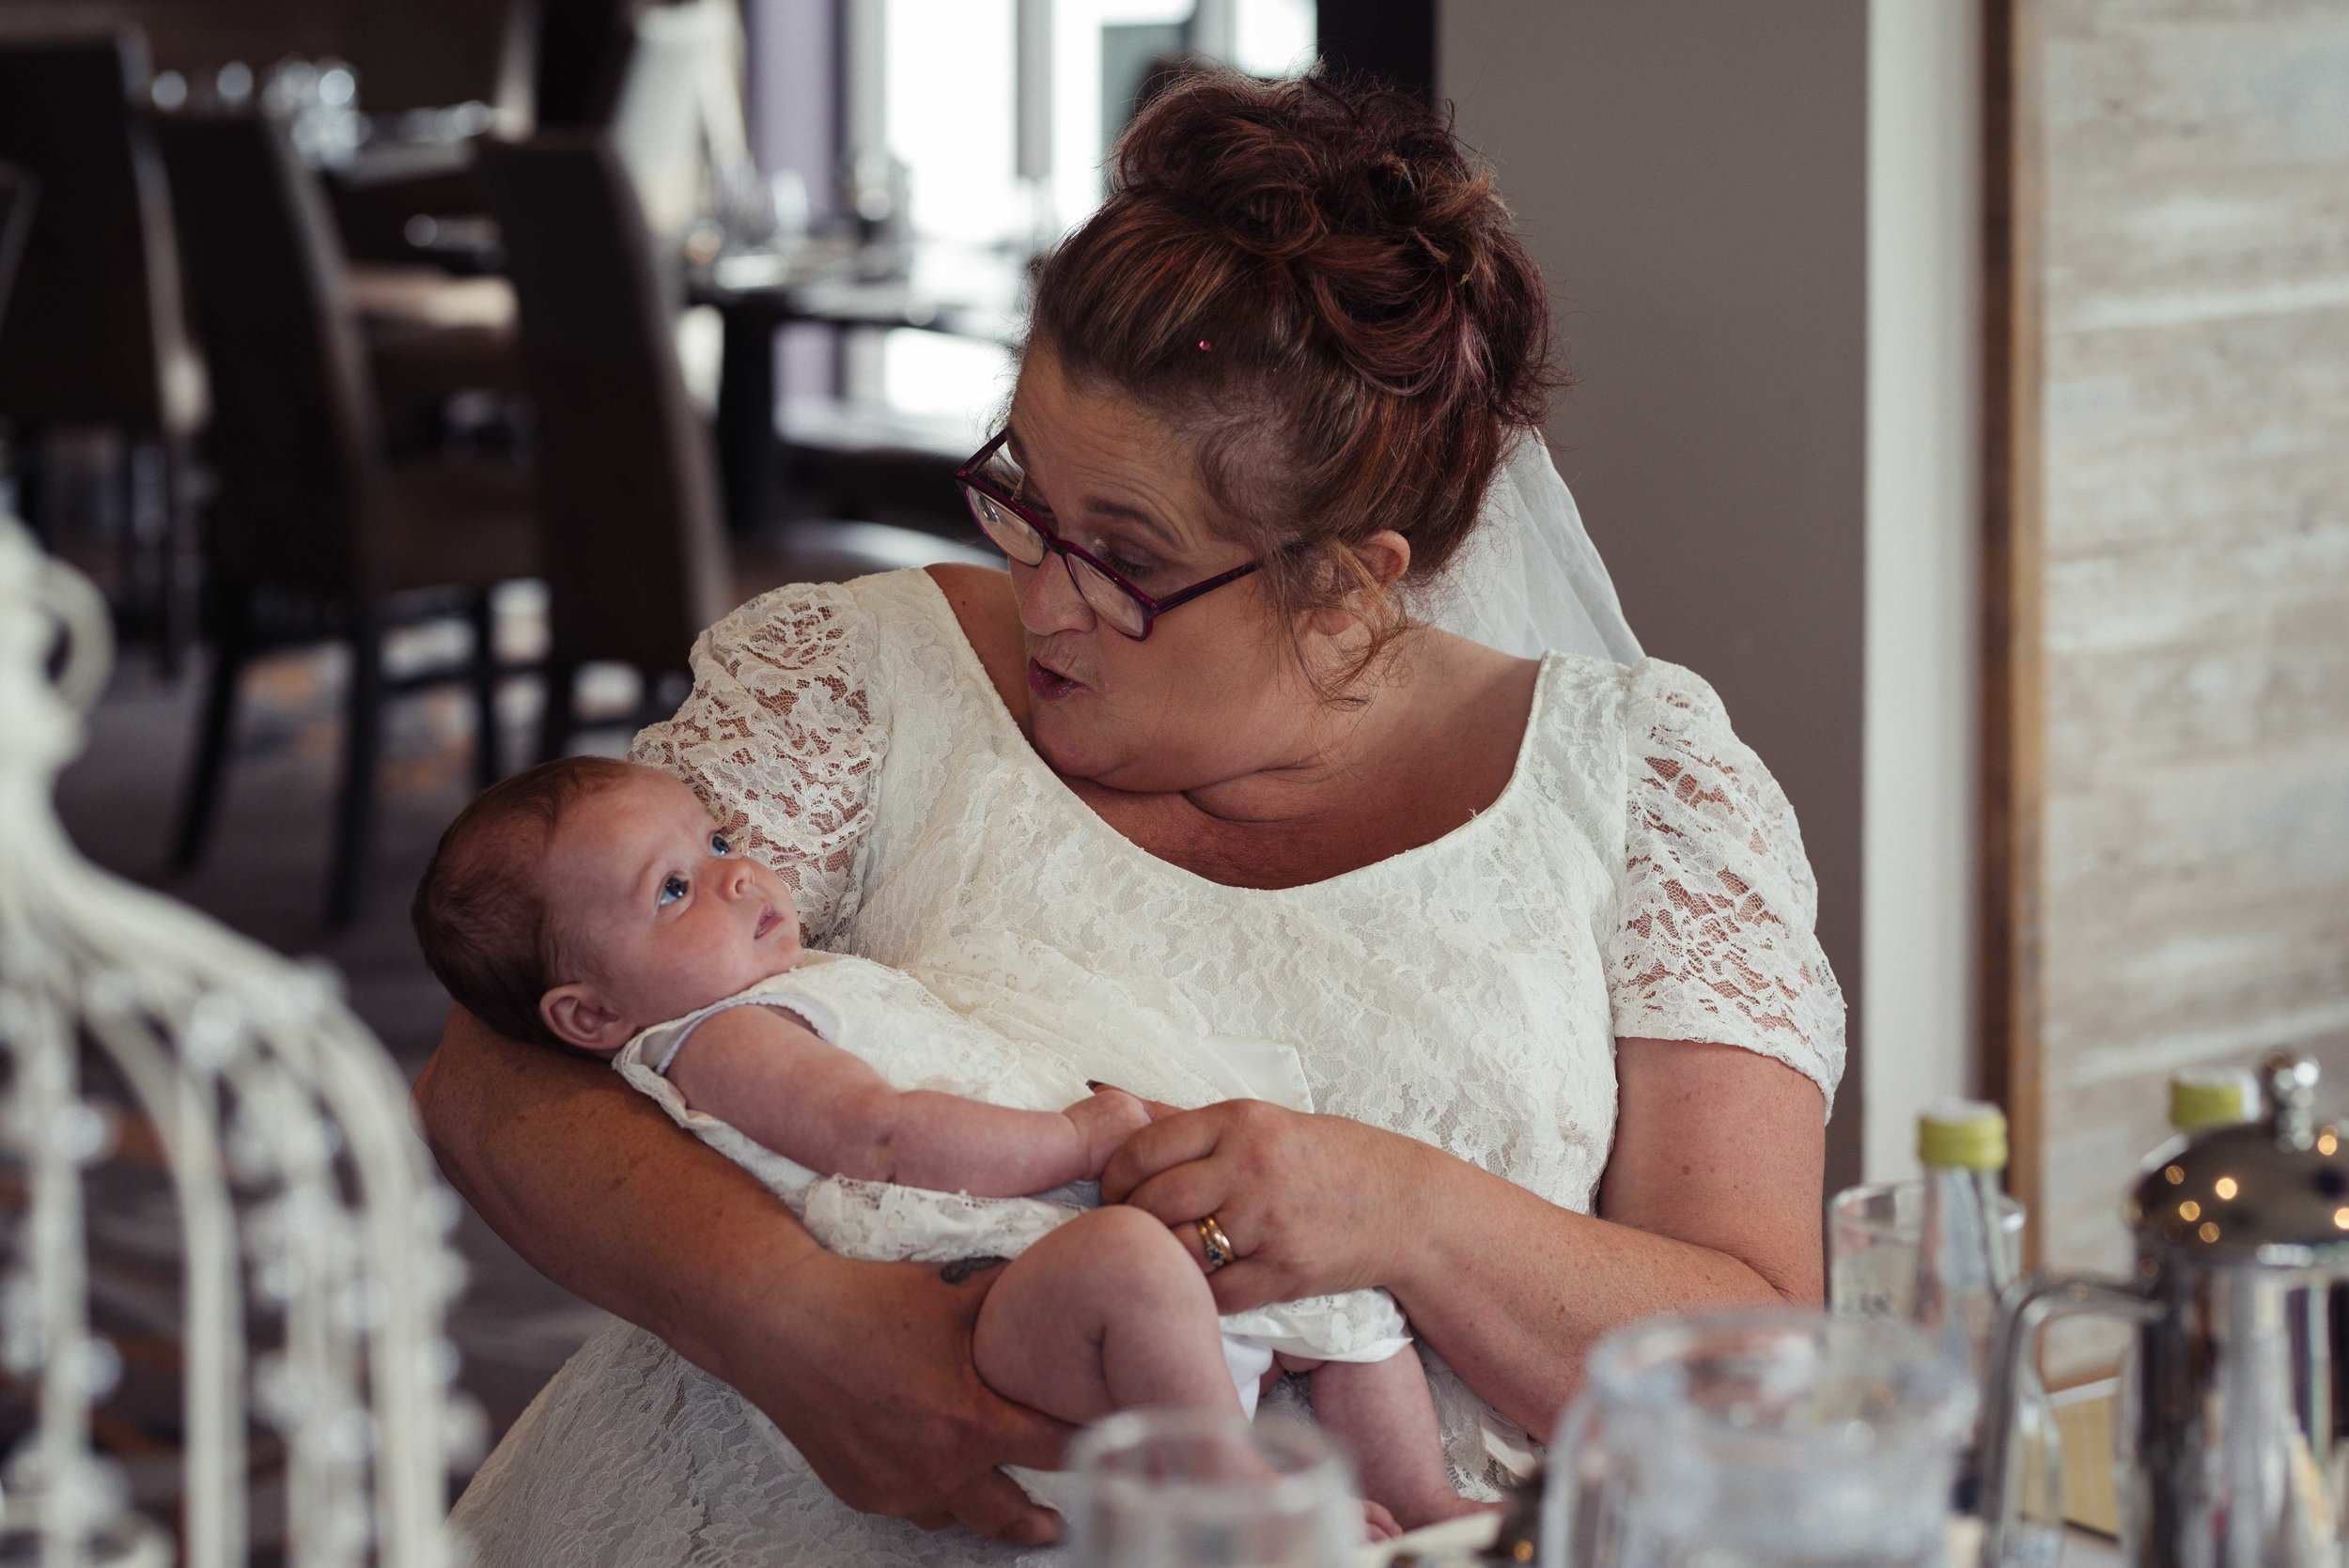 The bride holds a newborn baby wedding guest